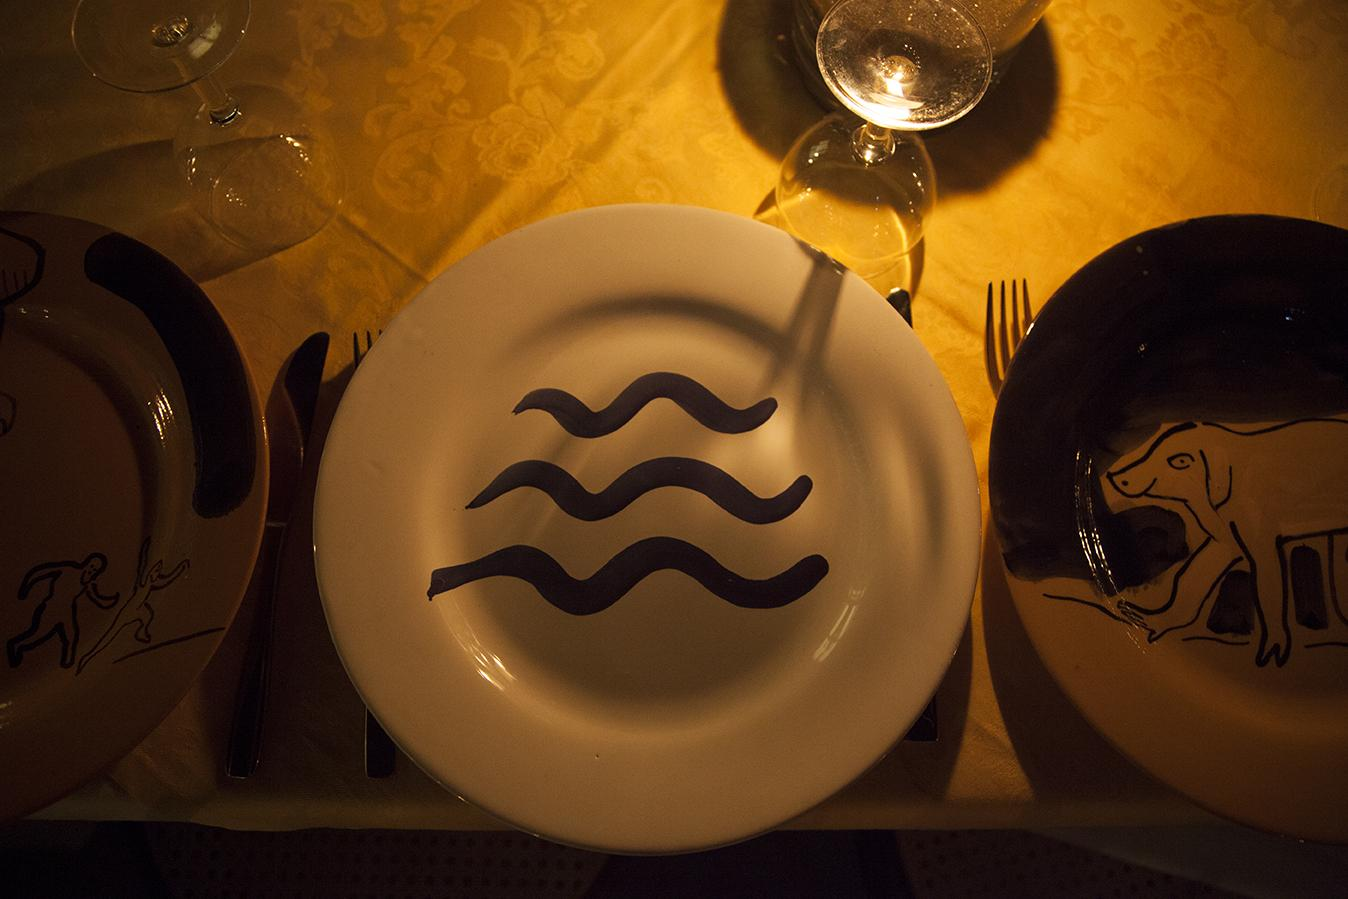 Ceramic plate by Camille Henrot depicting scenes from the Odyssey for the  dinner at Zurro on the opening night Photo: Giovanna Silva Courtesy Fiorucci Art Trust, London